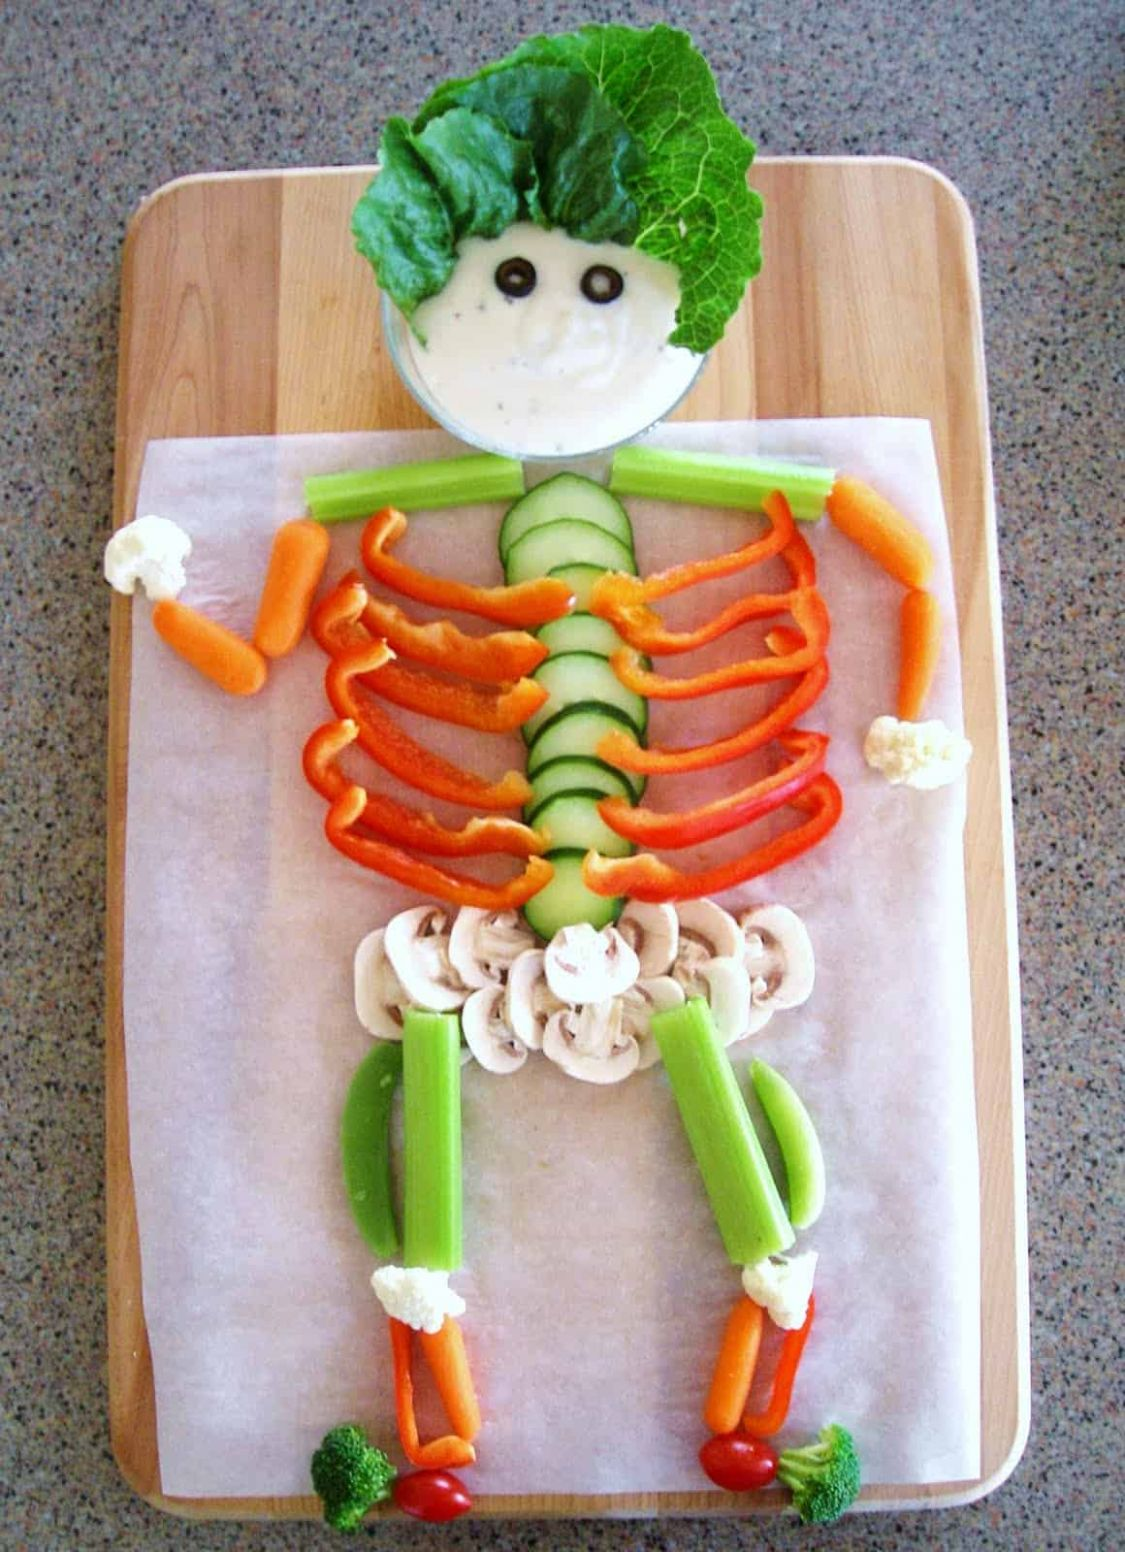 10 Healthy Halloween Recipe Ideas • The Healthy Foodie